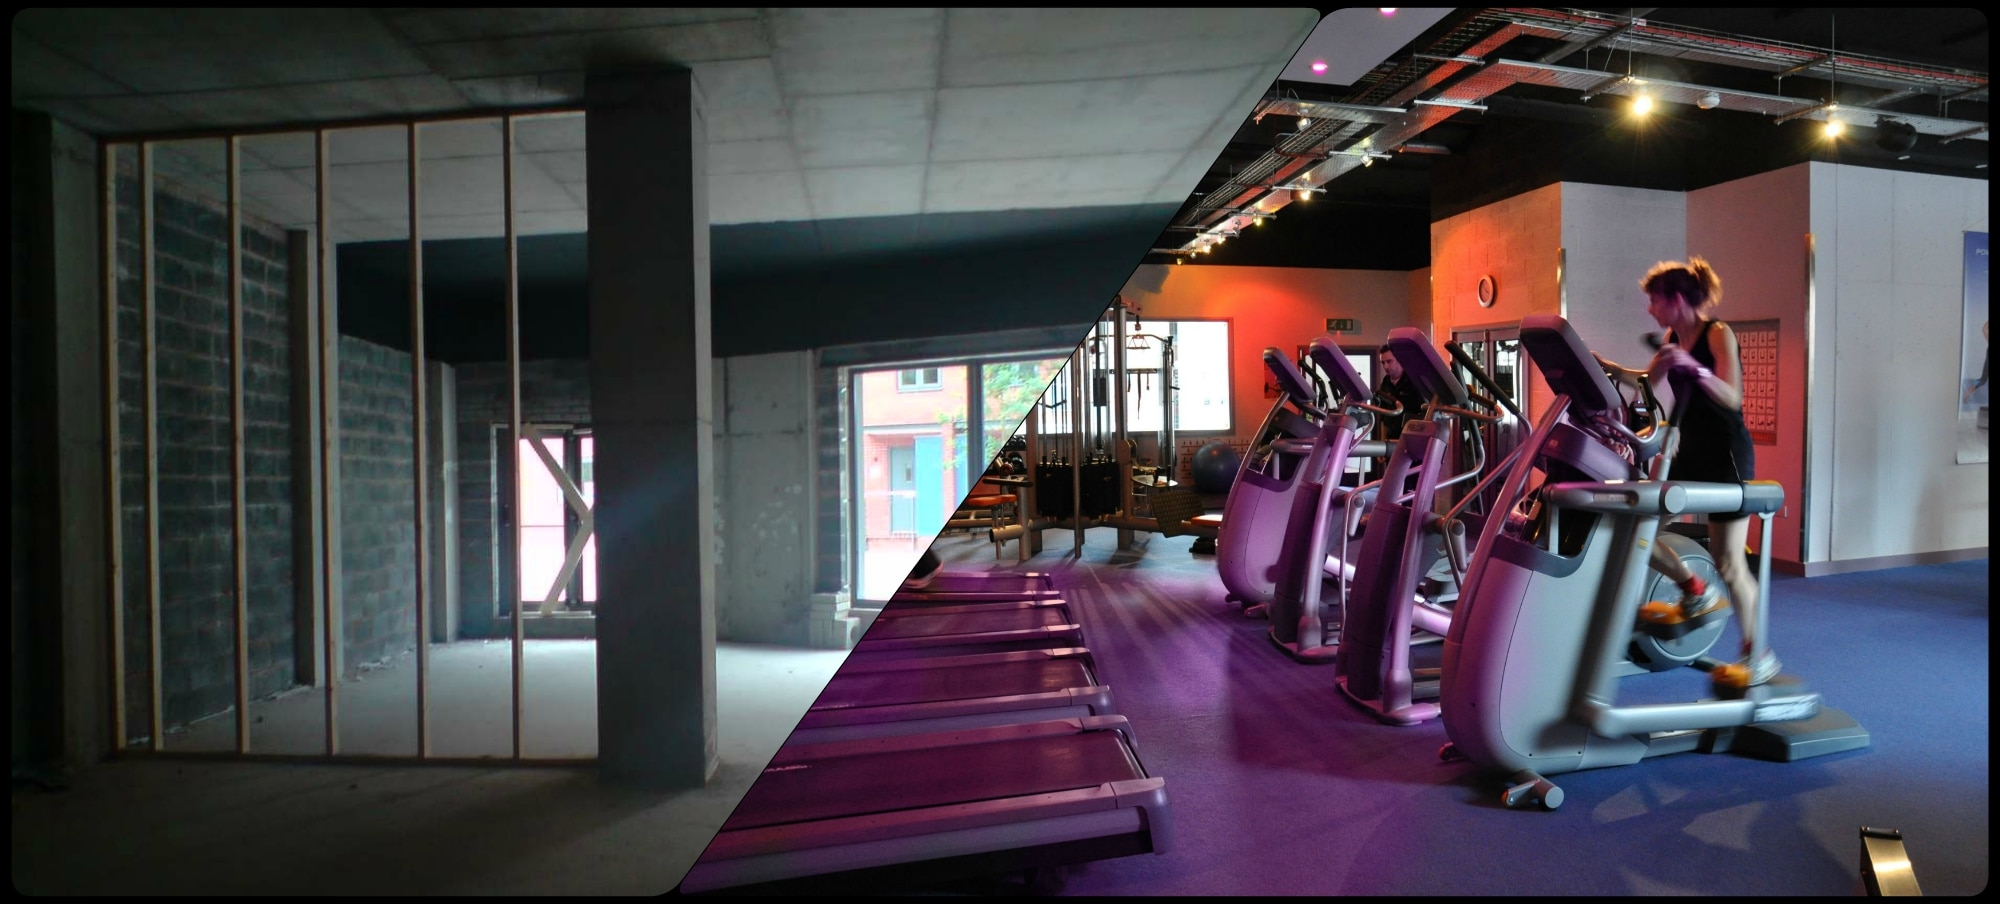 Starting a new gym or leisure center, expert advice on creating a fitness business